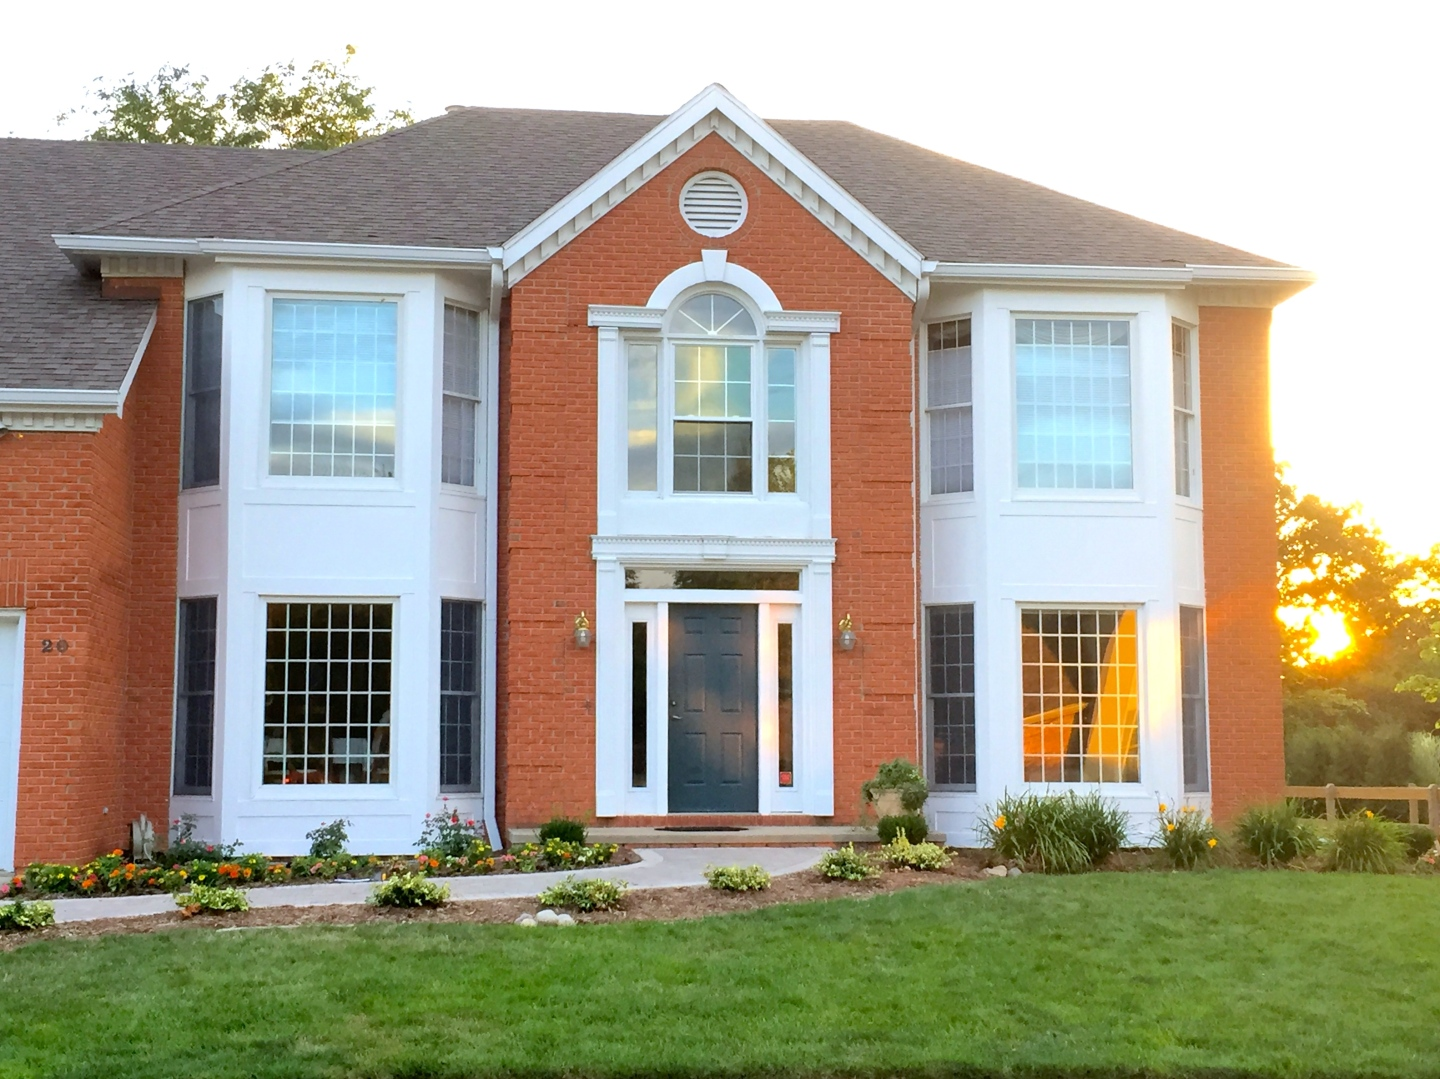 Two story bay windows in orange brick home with withe dentil moulding